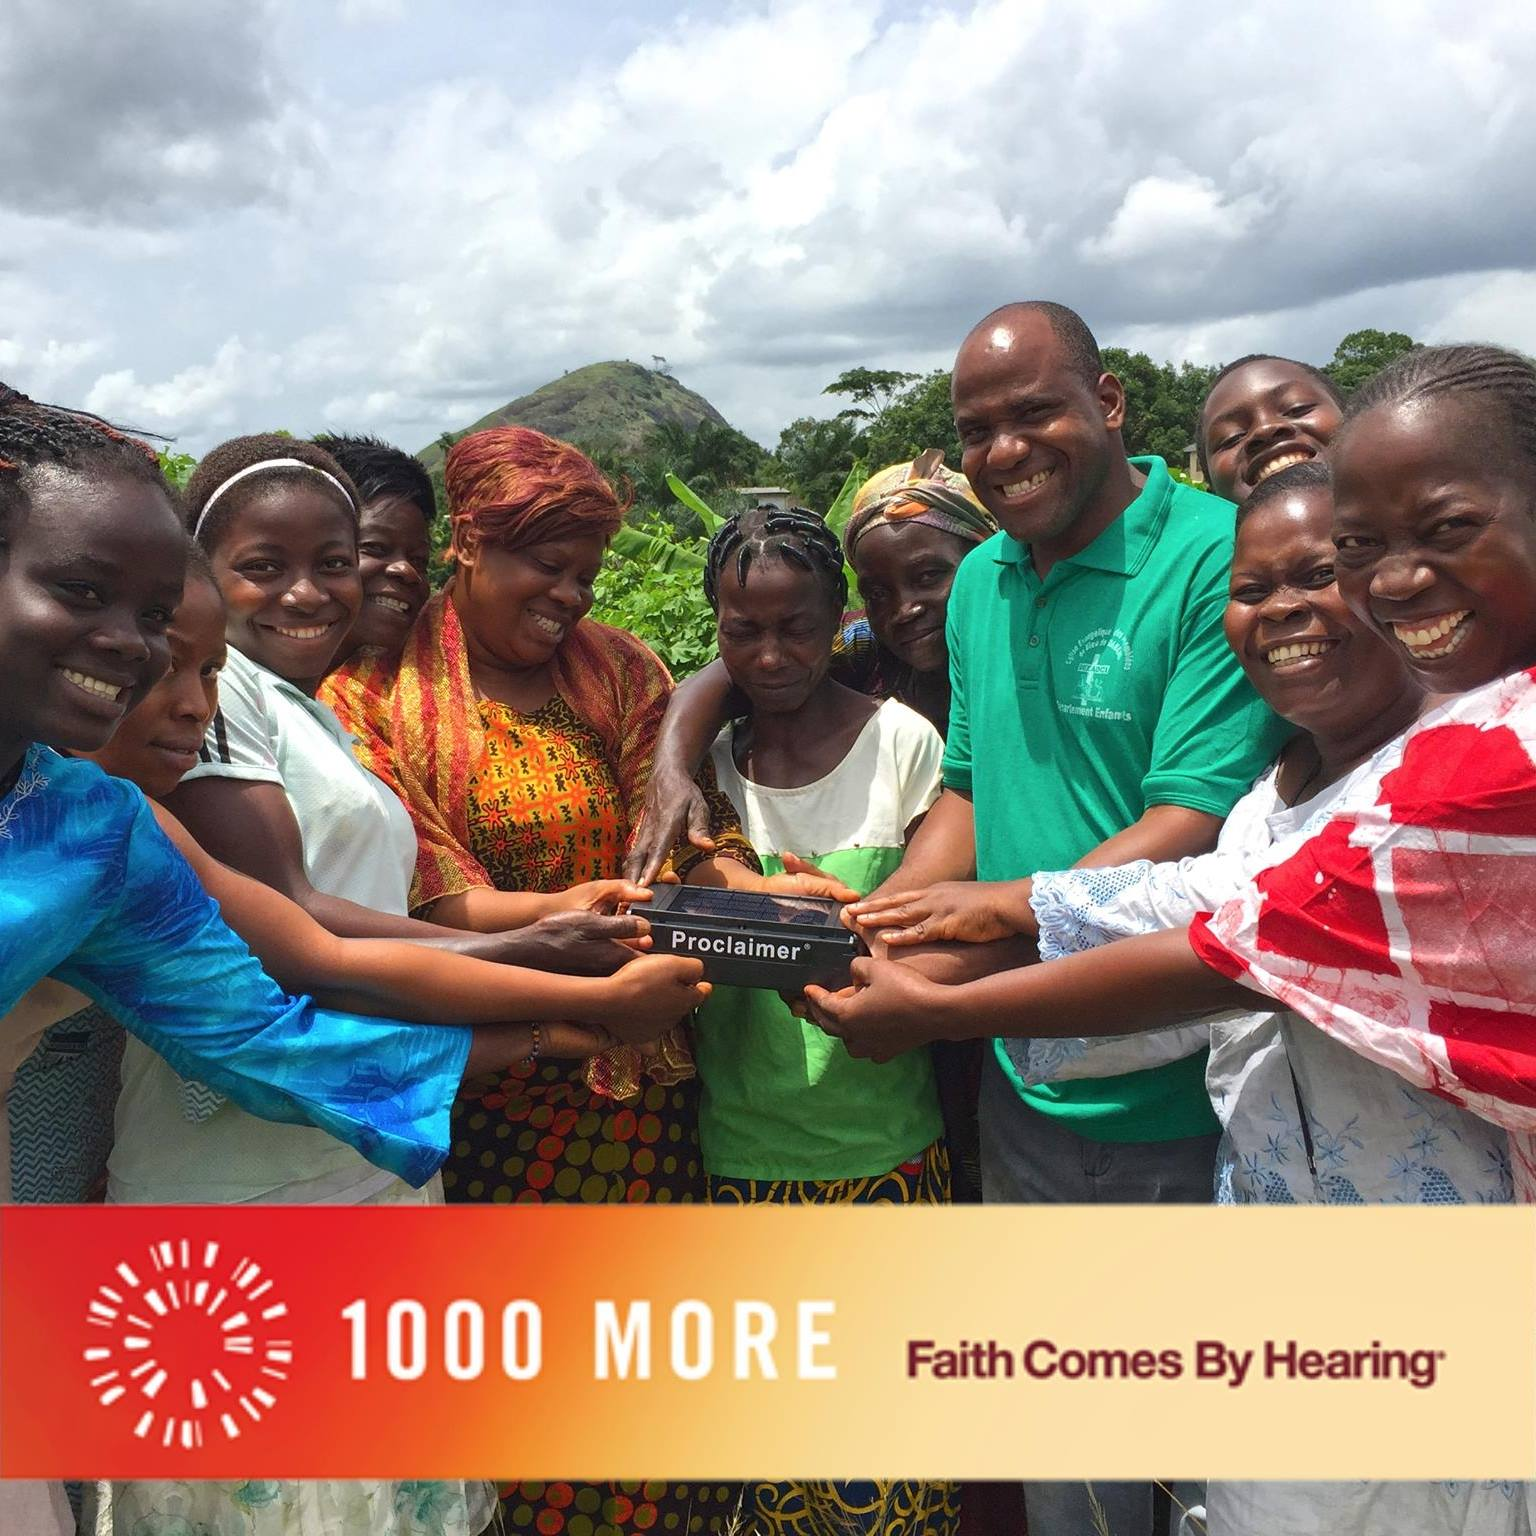 '1,000 More' campaign propelling the Great Commission